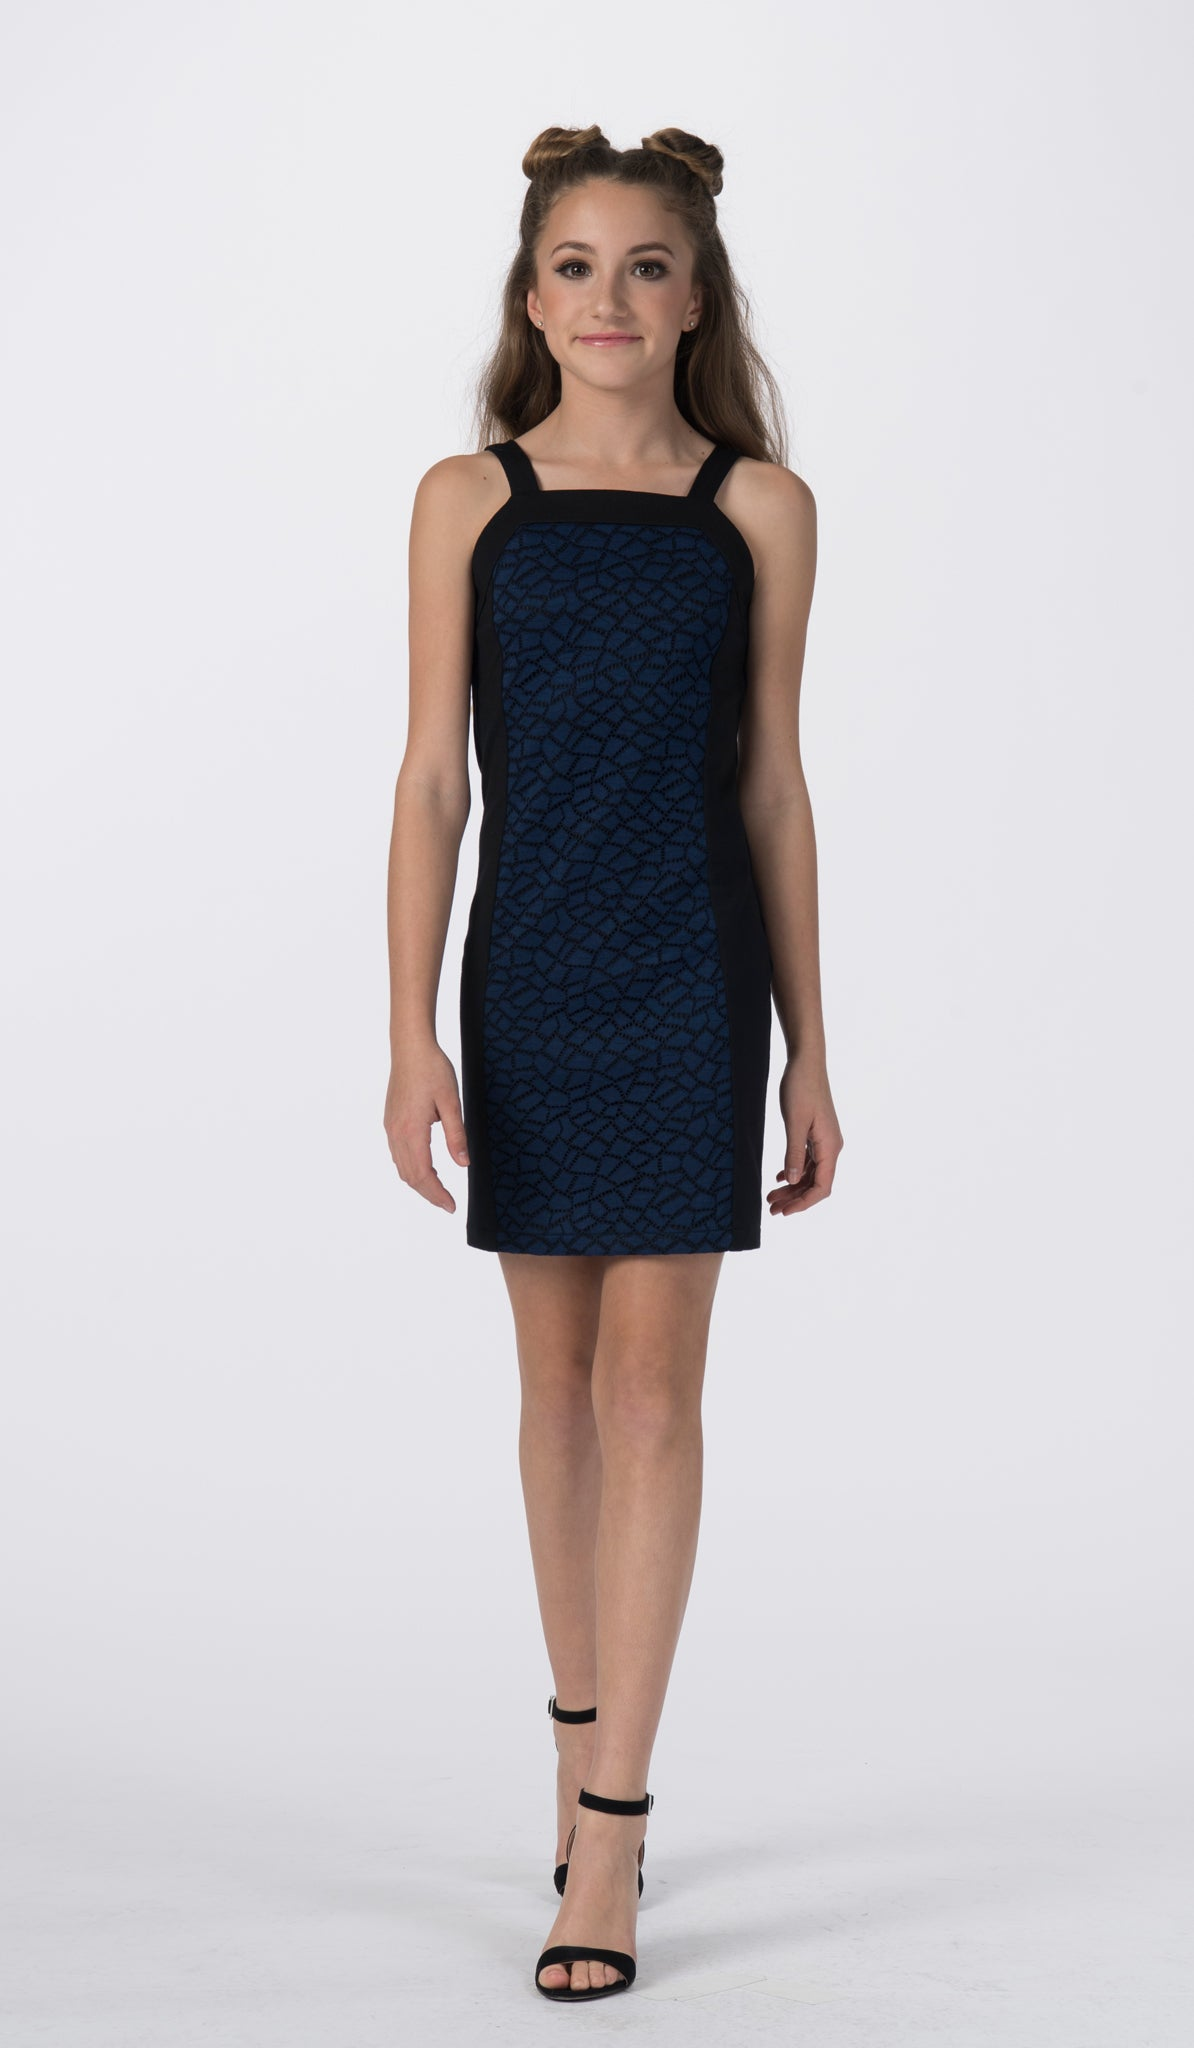 Sally Miller tween black special occasion dress with navy crochet lace front view